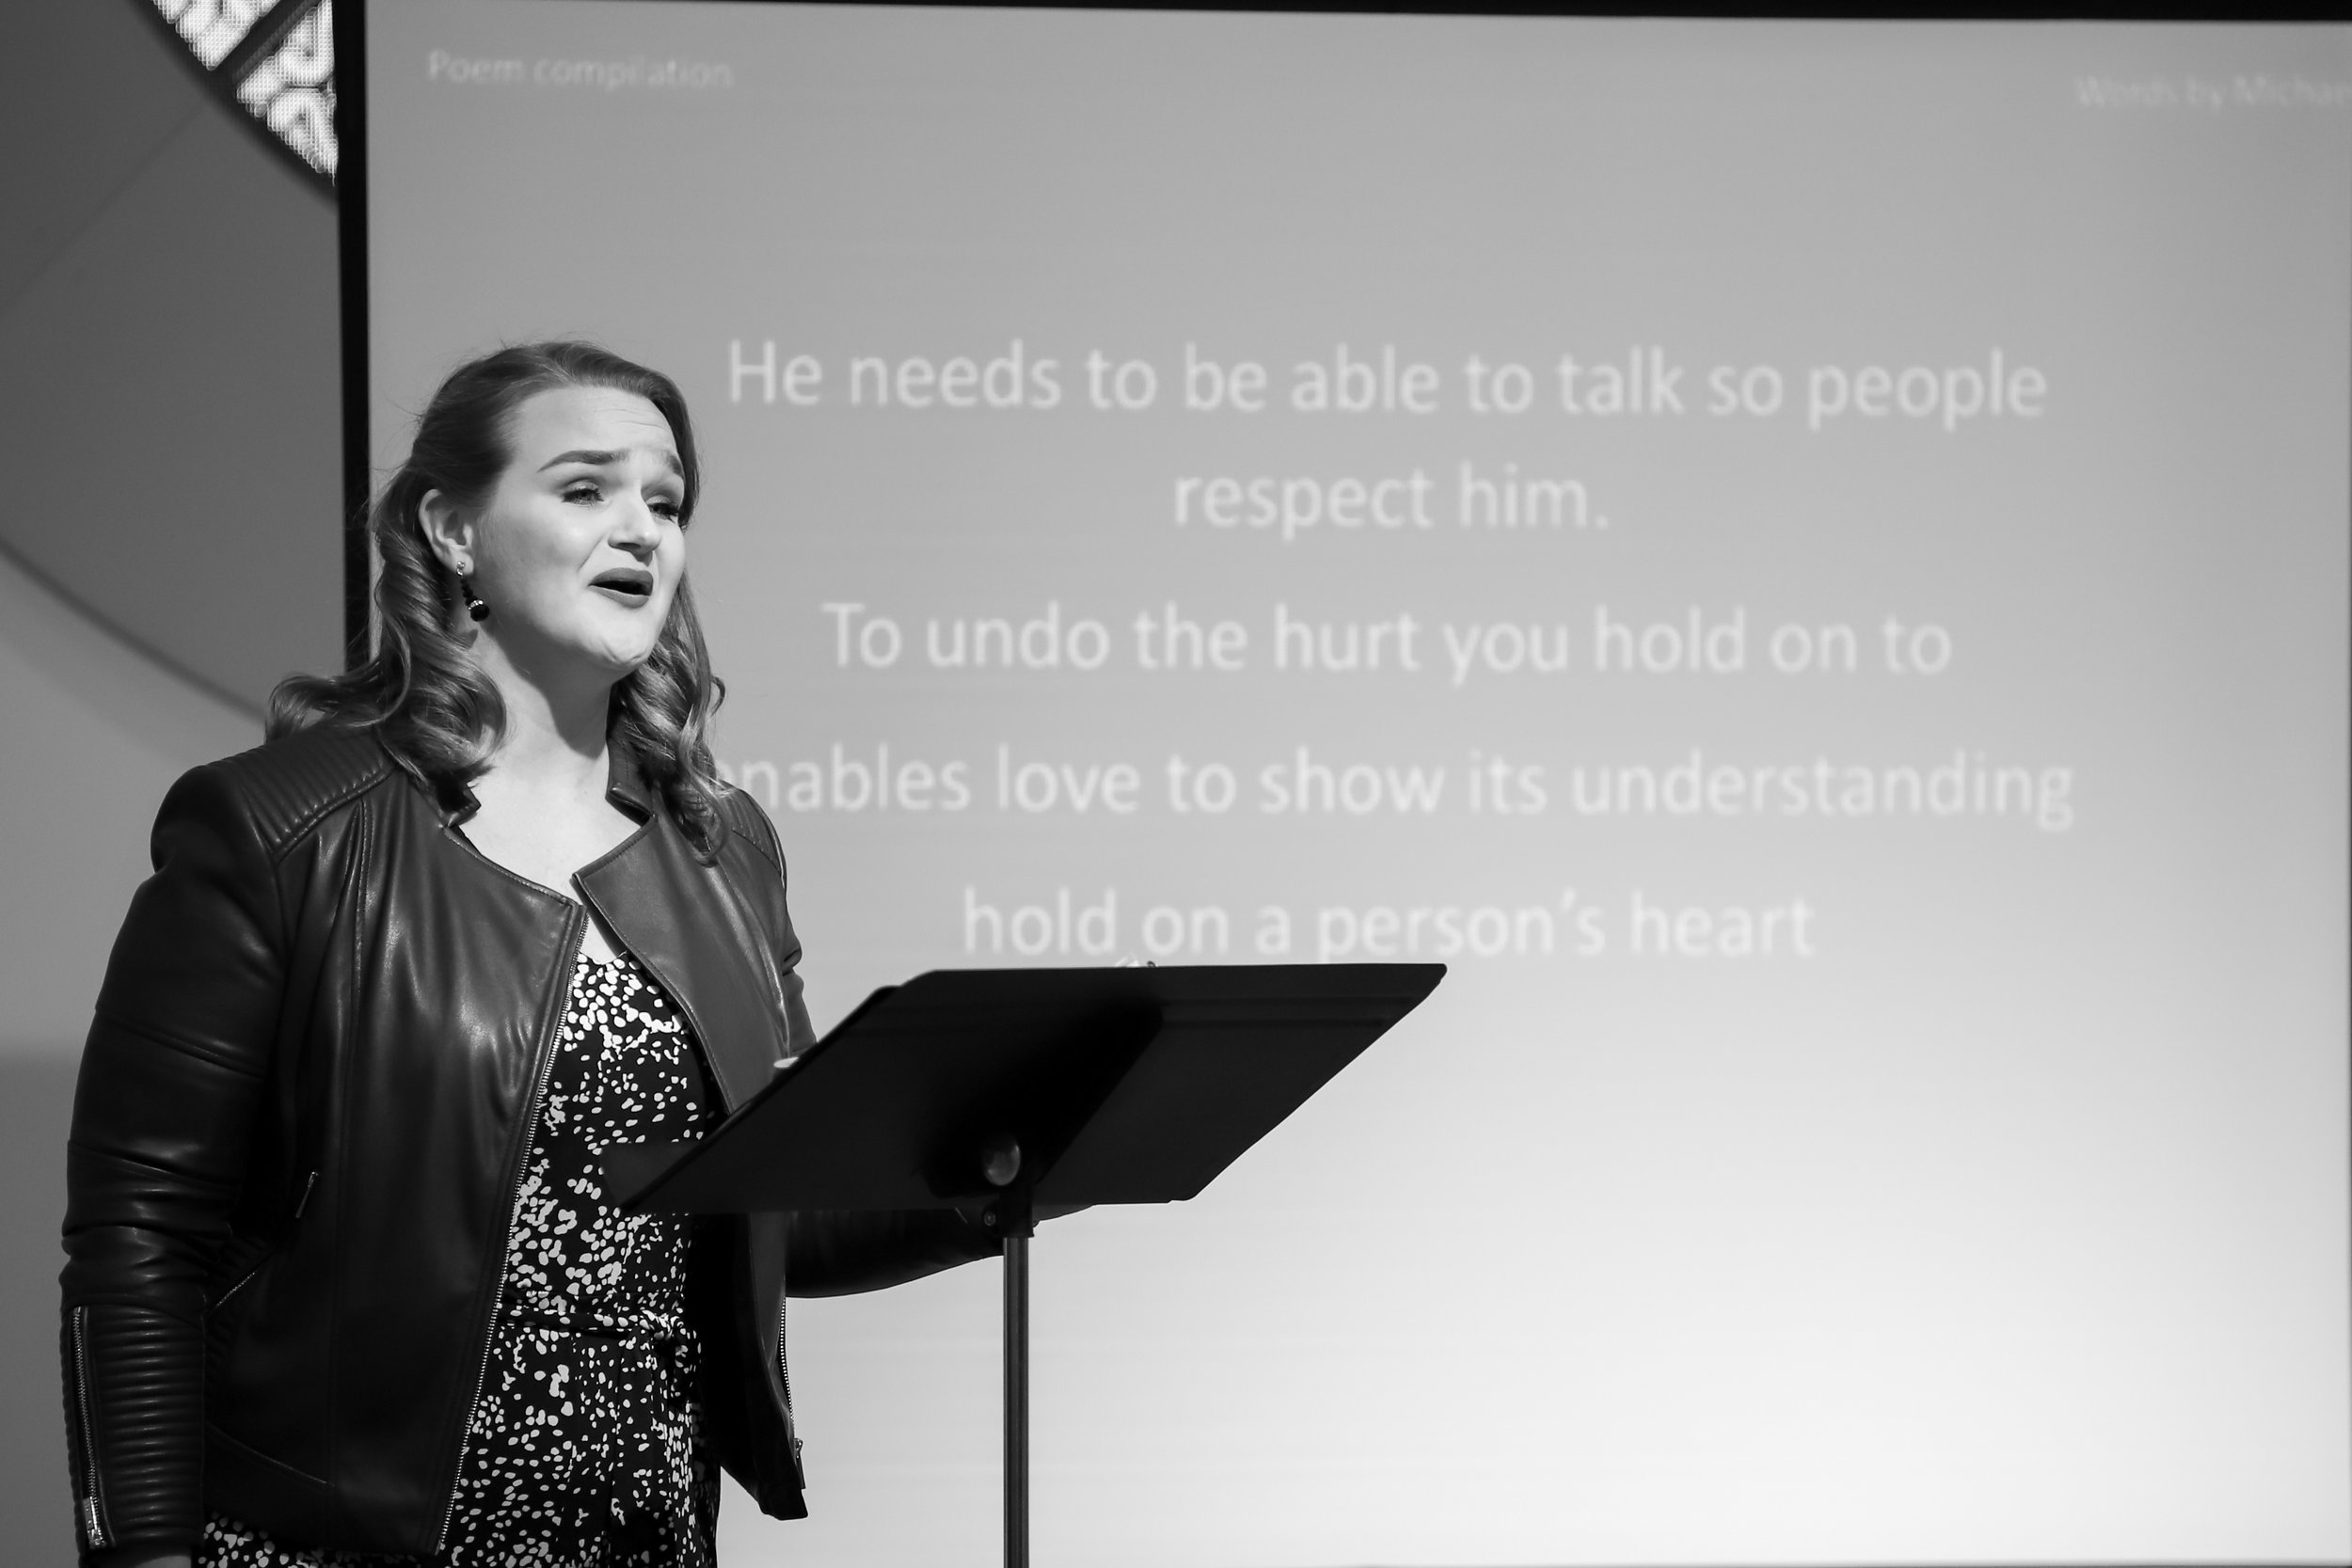 Keely Futterer performs a poem compilation by Michael Zepf. Michael's poem describes his desire to speak and be heard.